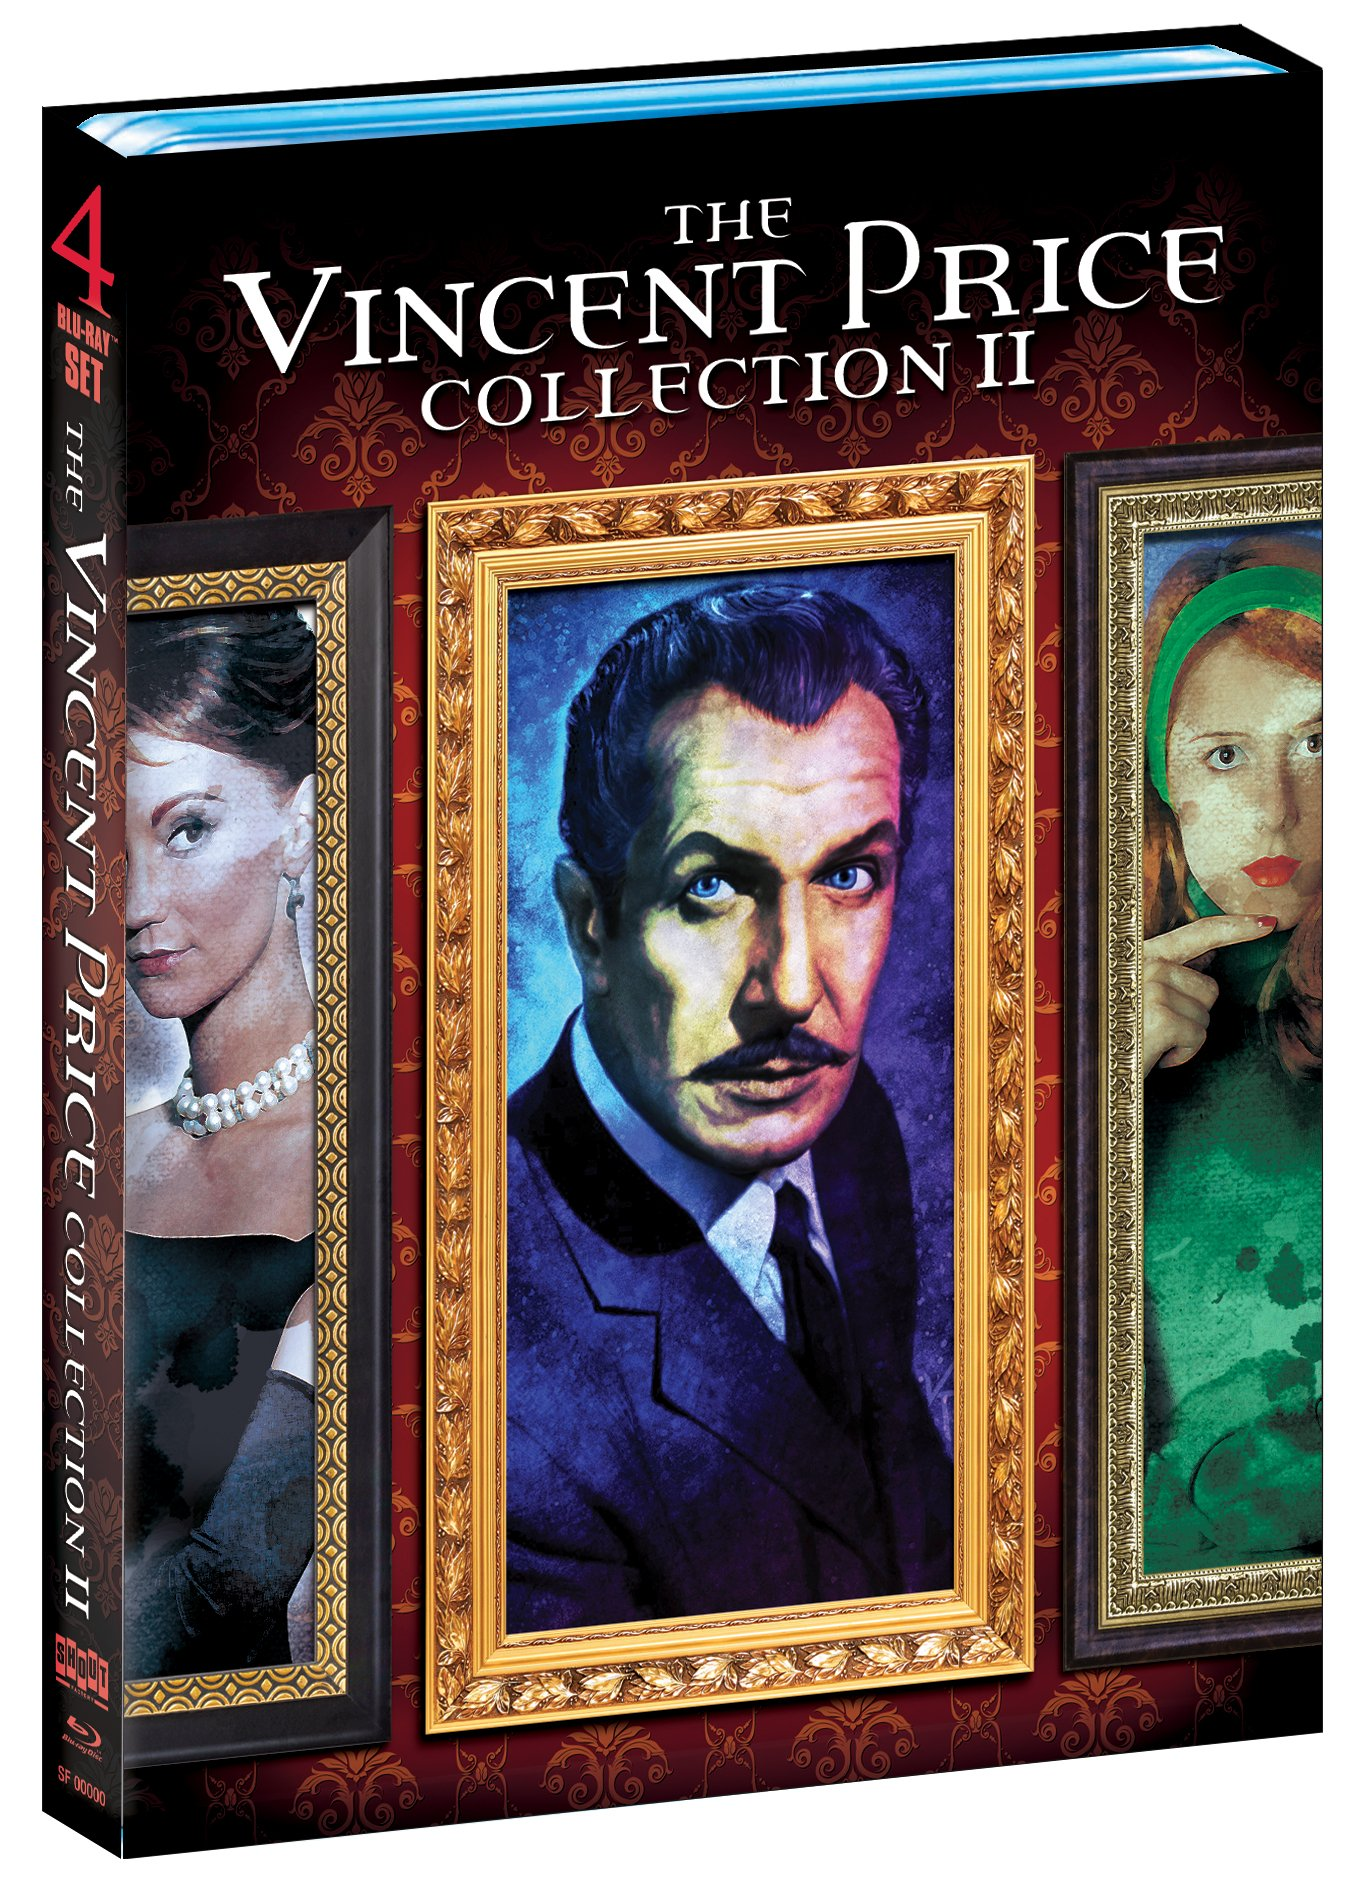 The Vincent Price Collection II [House on Haunted Hill, The Return of the Fly, The Comedy of Terrors, The Raven, The Last Man on Earth, Tomb of Ligeia & Dr. Phibes Rises Again [Blu-ray]